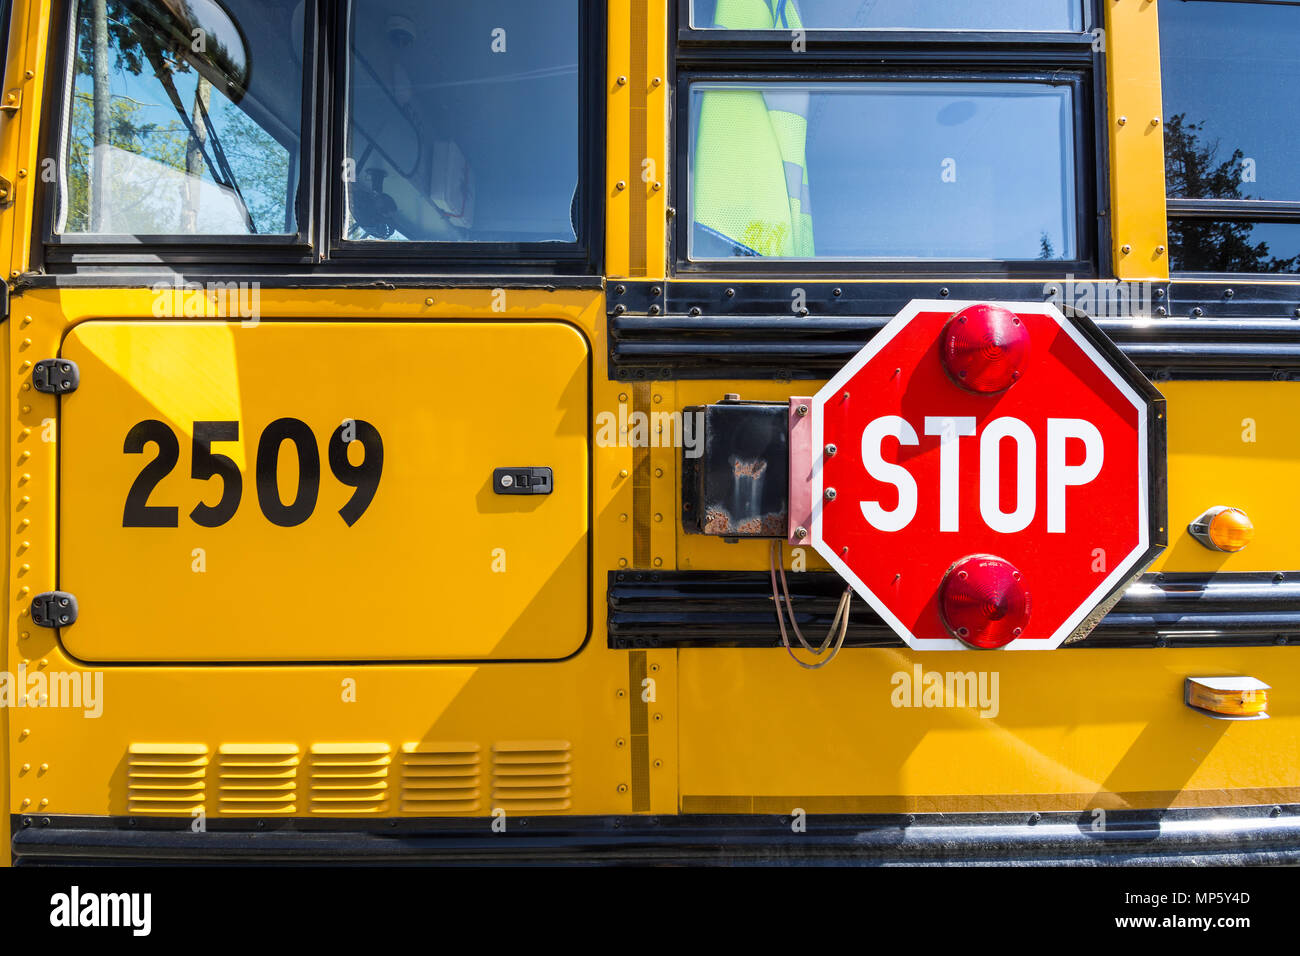 Stop sign on School bus, Hornby Island, BC, Canada. - Stock Image